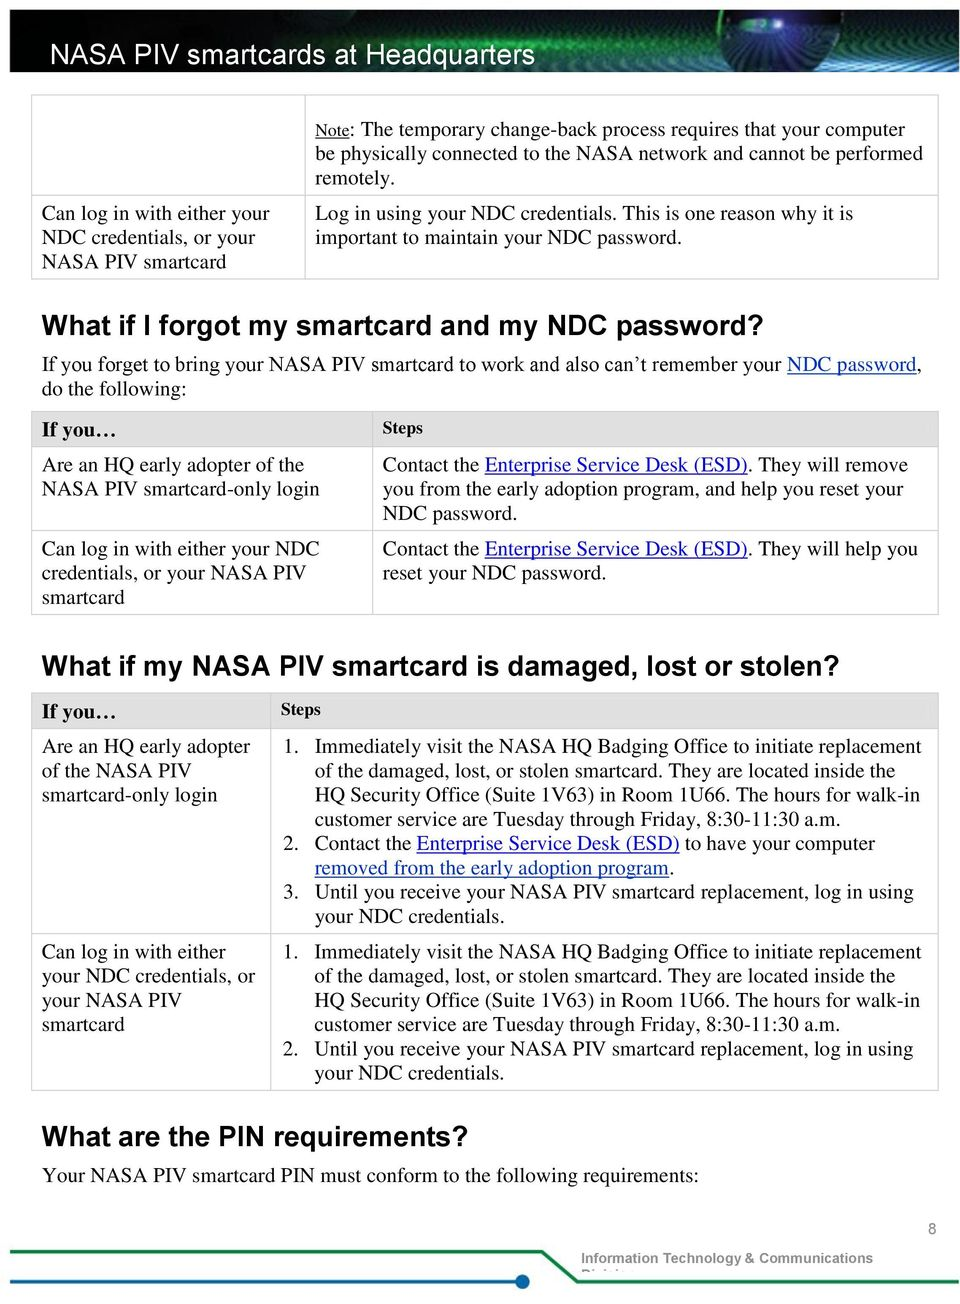 If you forget to bring your NASA PIV smartcard to work and also can t remember your NDC password, do the following: If you Are an HQ early adopter of the NASA PIV smartcard-only login Can log in with